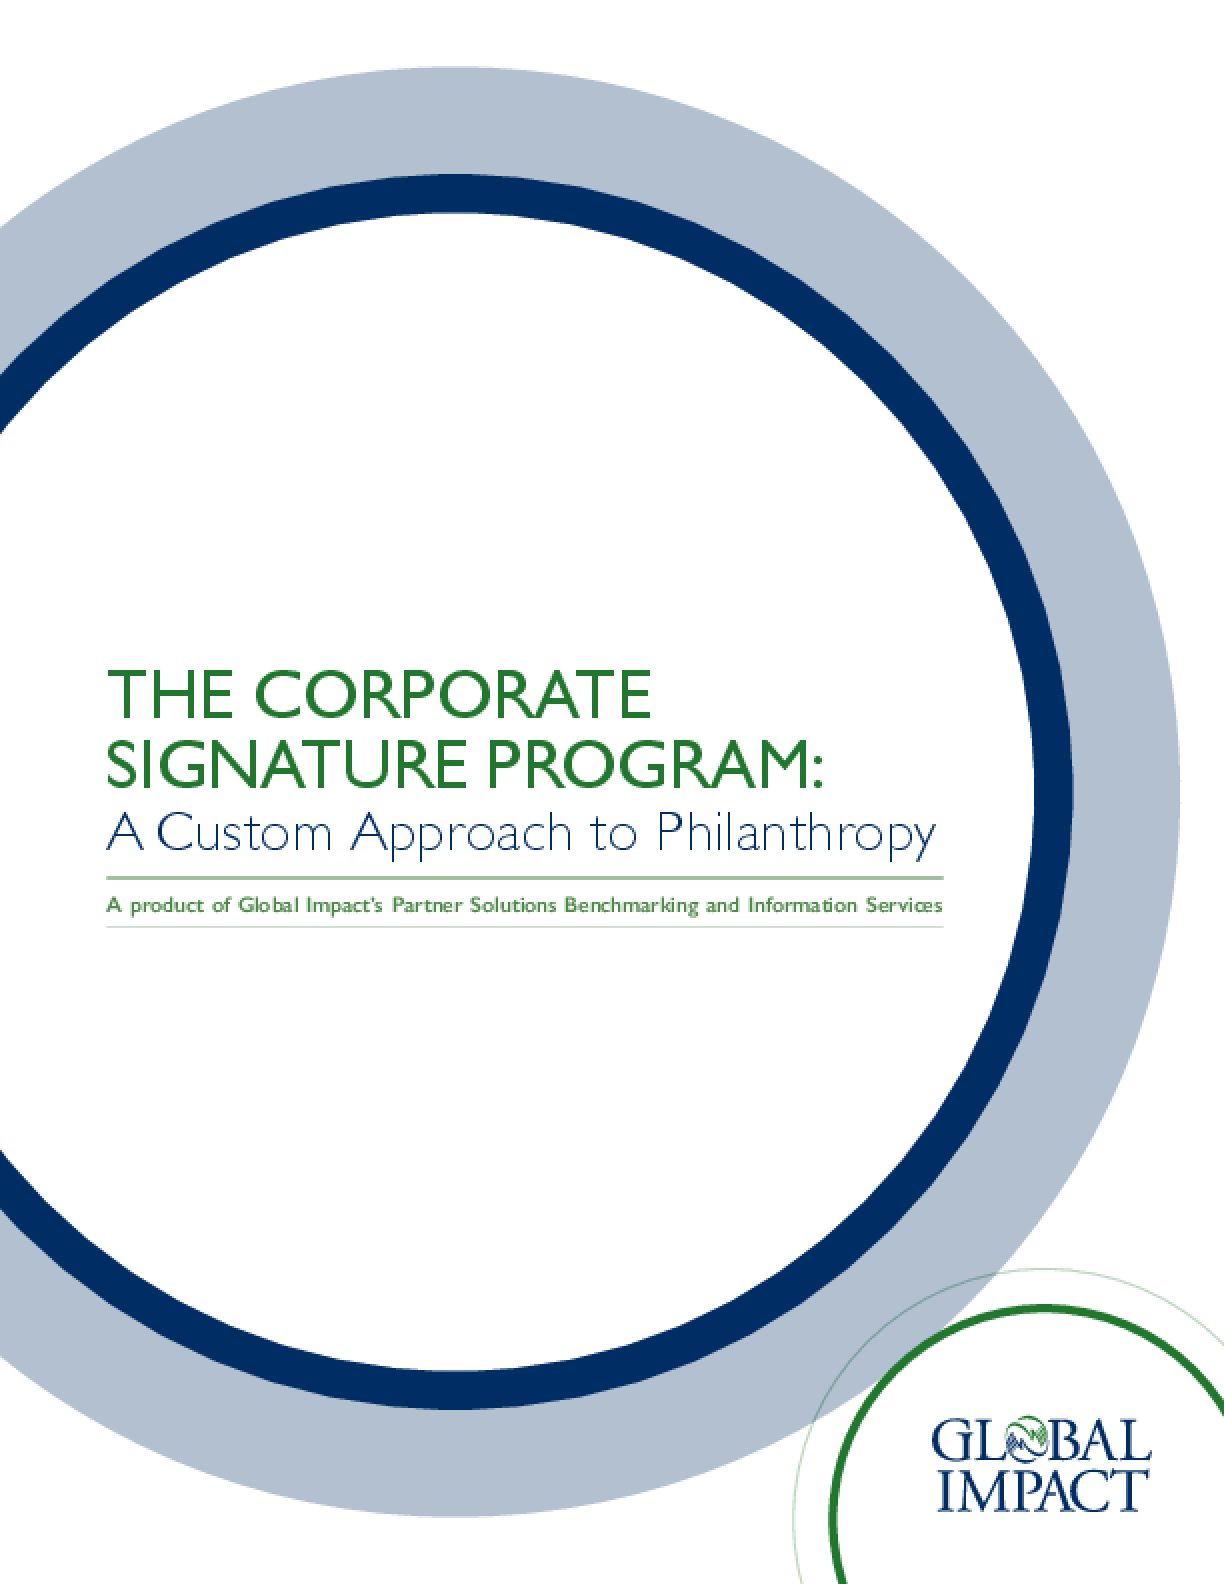 The Corporate Signature Program: A Custom Approach to Philanthropy